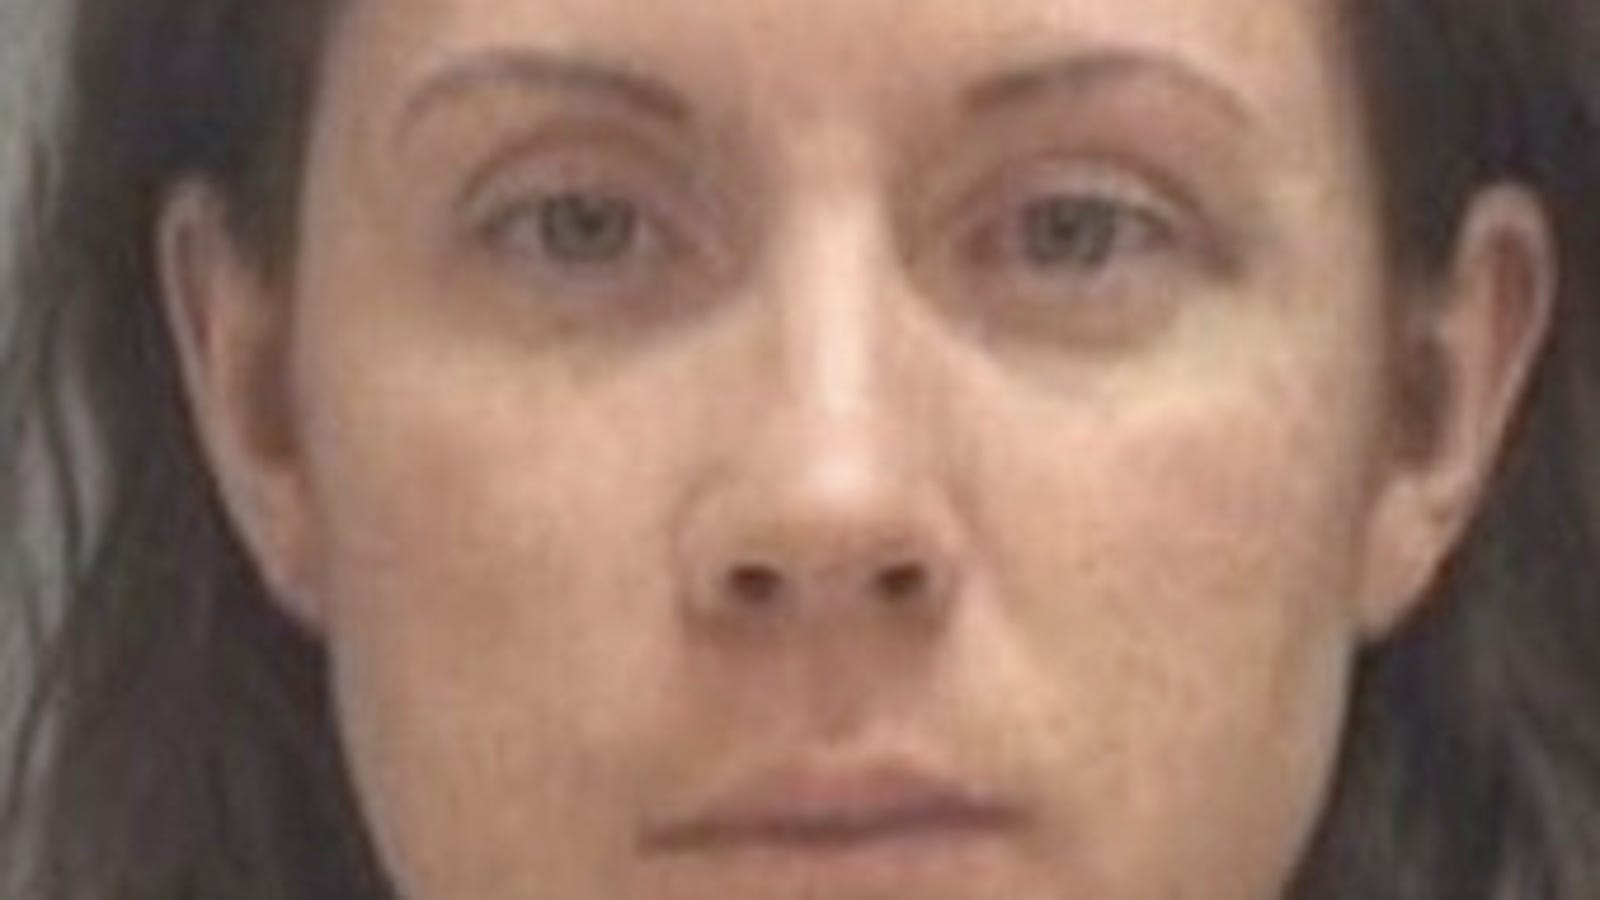 Nude Woman In Utah Steals Two Cars In Years Weirdest -8818